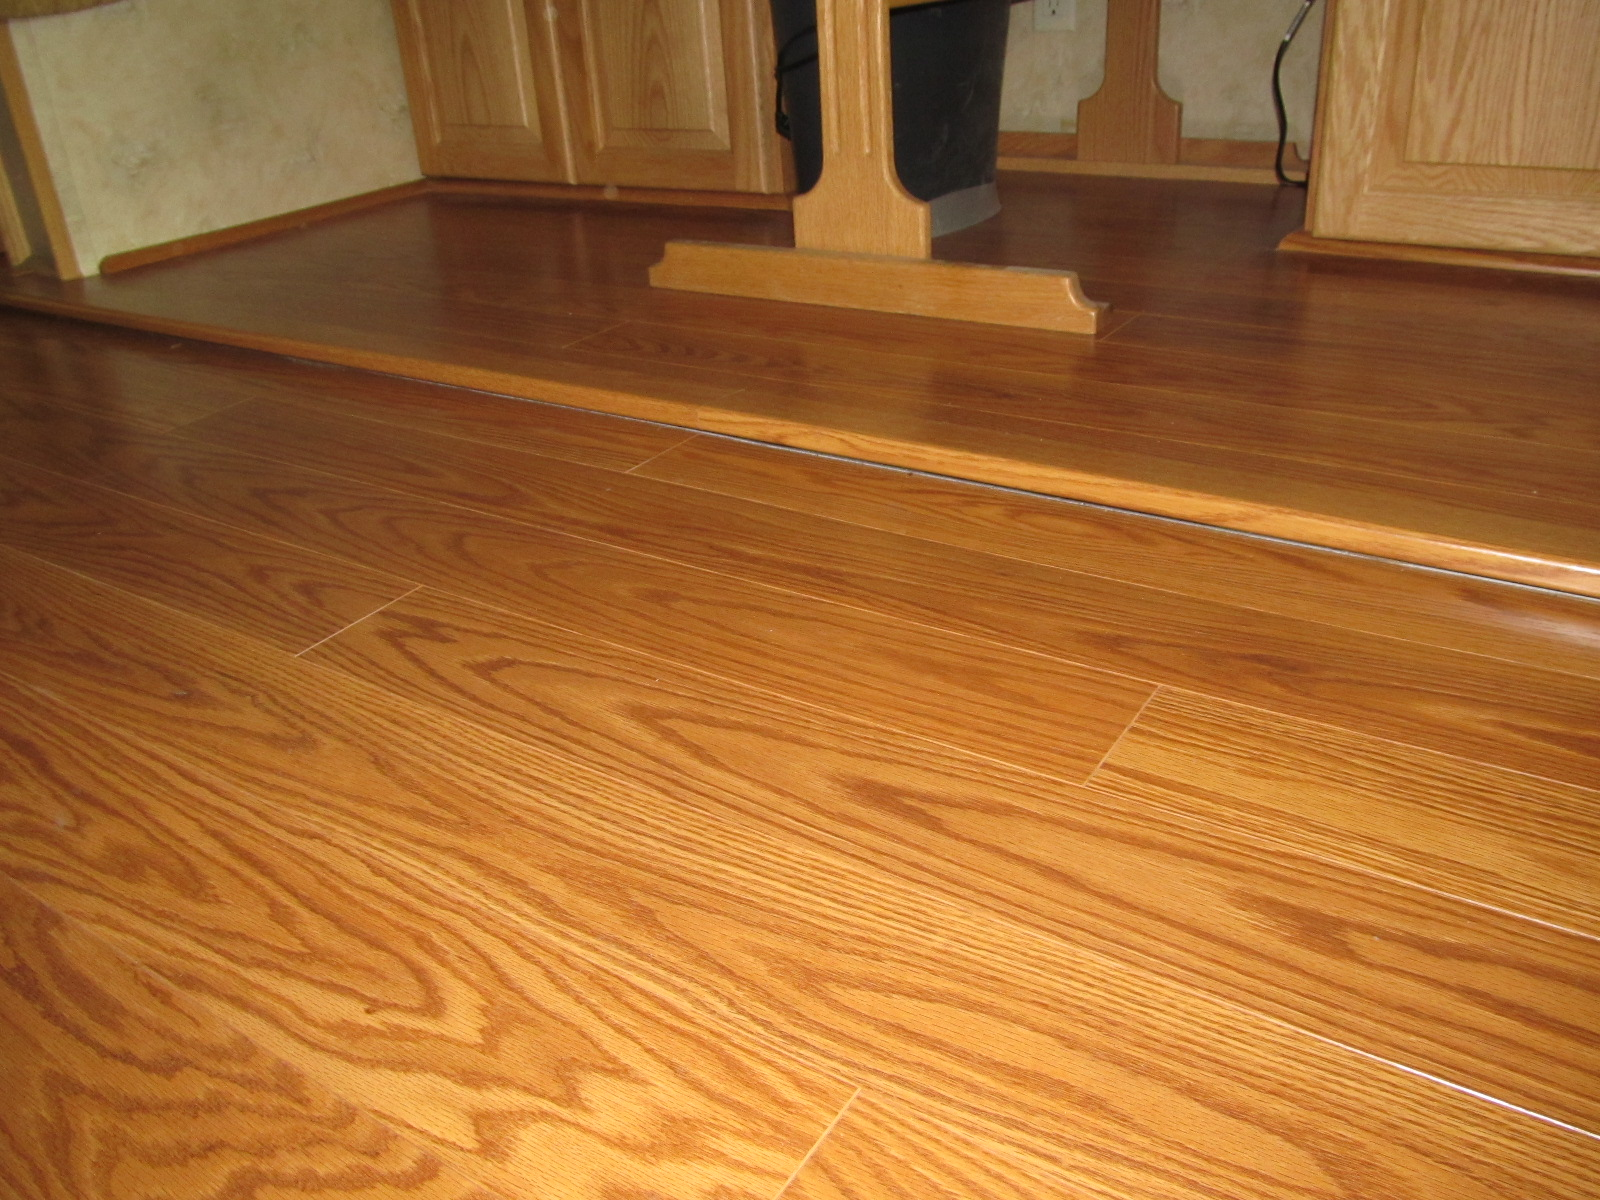 Replacing laminate flooring with carpet laplounge for Replacing hardwood floors